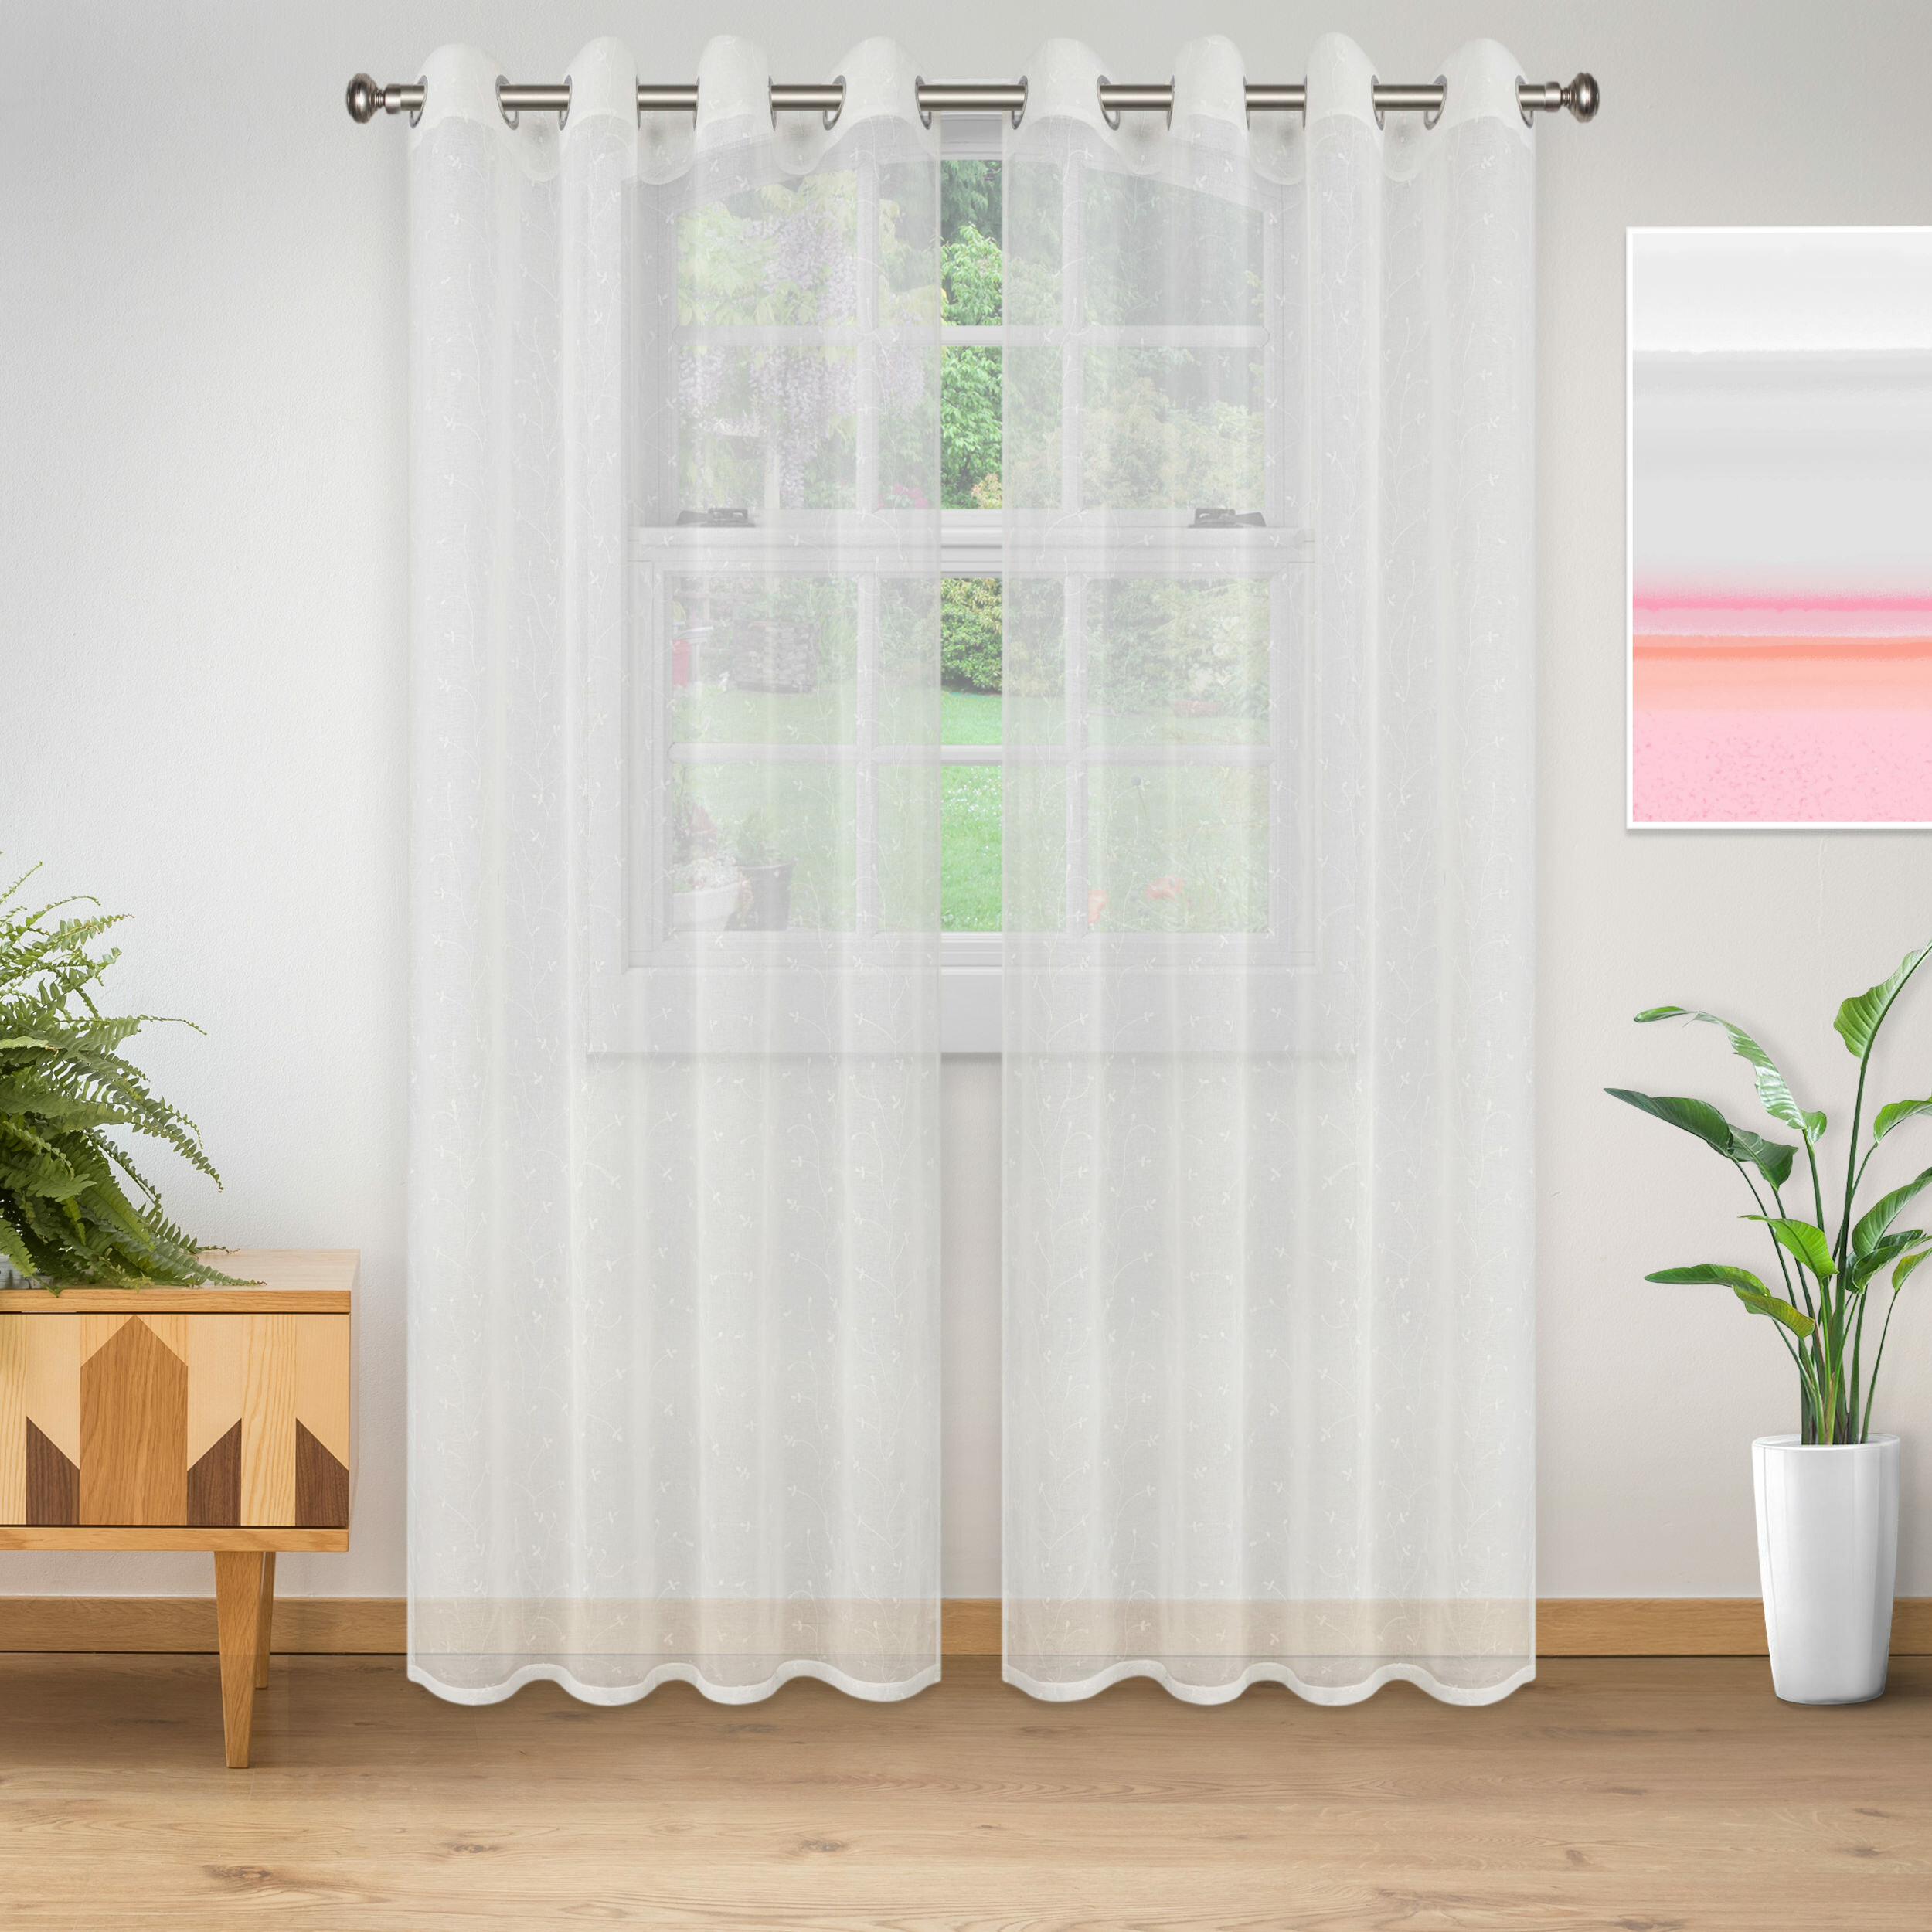 Colena Lightweight Delicate Flower Sheer Grommet Curtain Panels With Regard To Luxury Collection Cranston Sheer Curtain Panel Pairs (View 10 of 20)